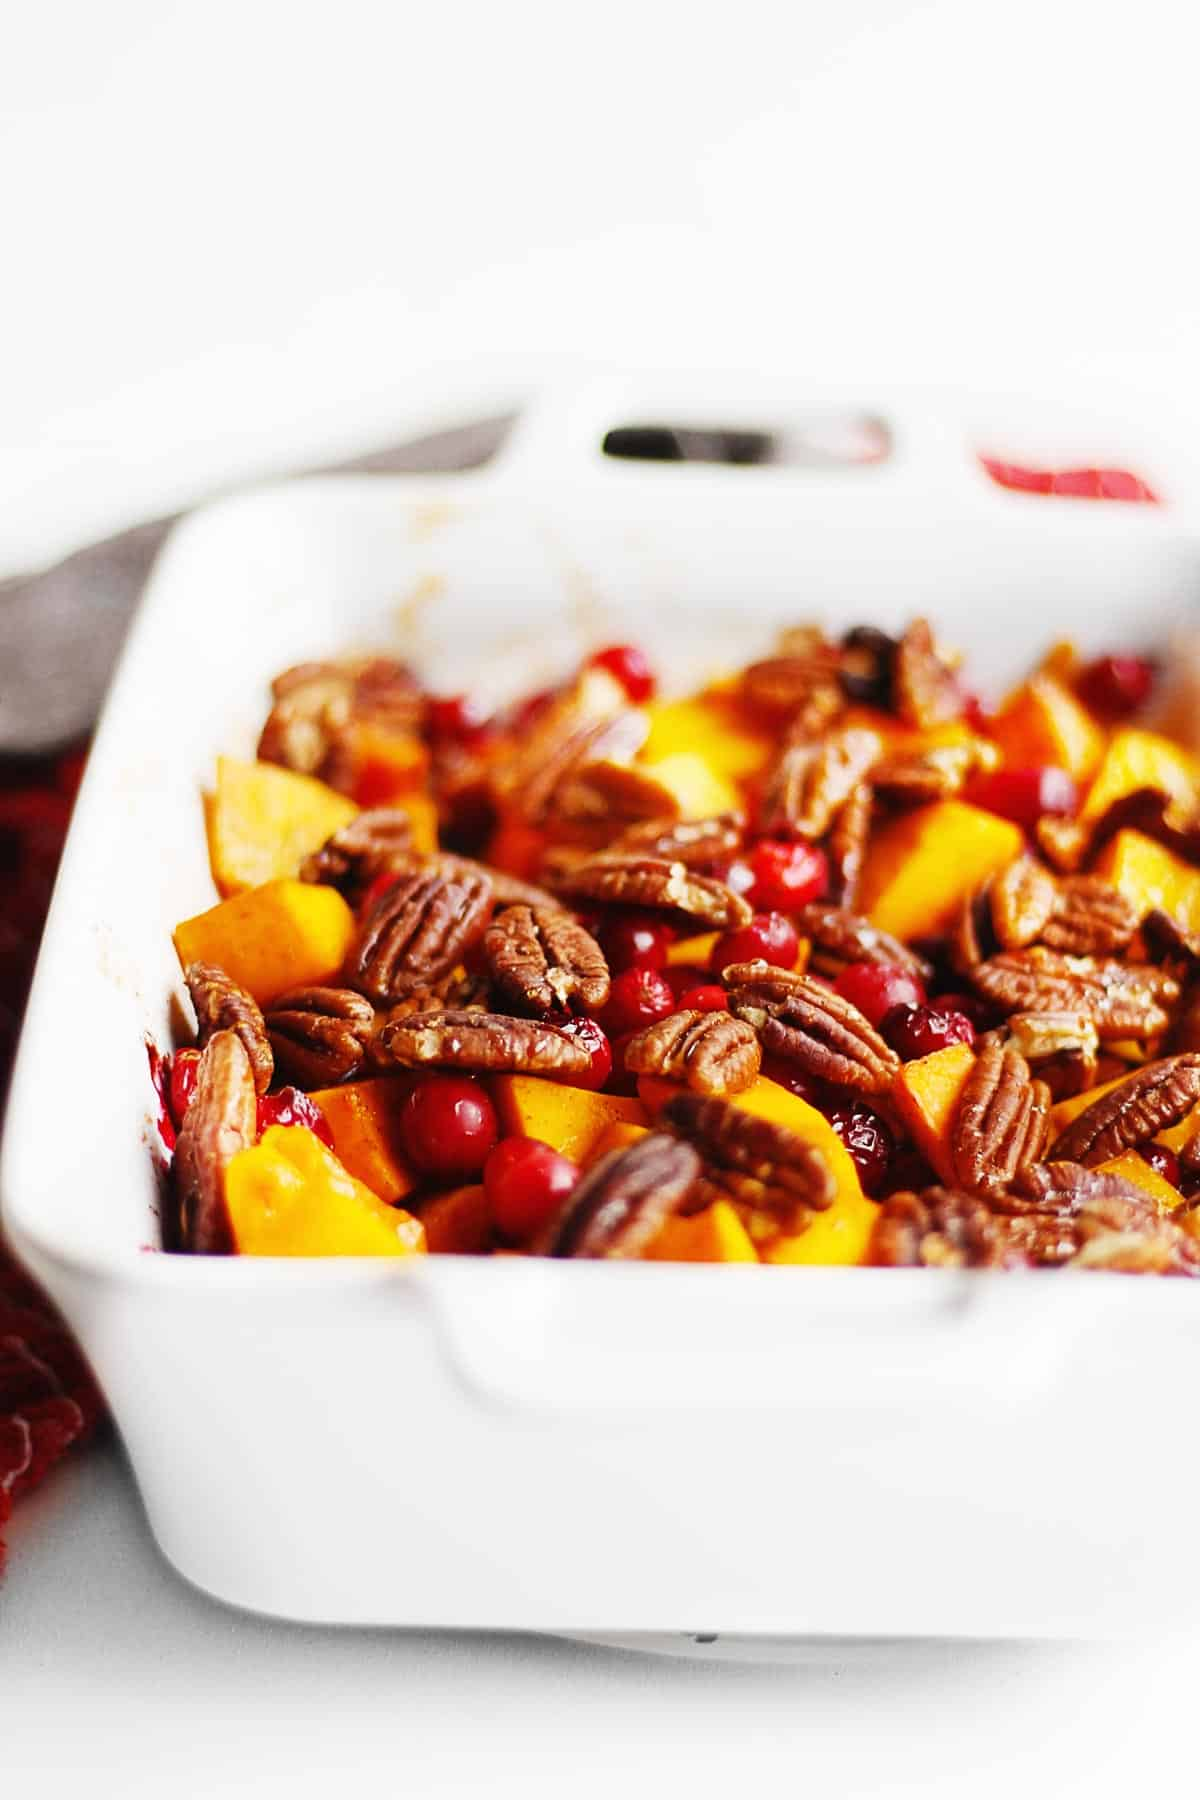 Cinnamon roasted butternut squash with cranberries and pecans in a white pan